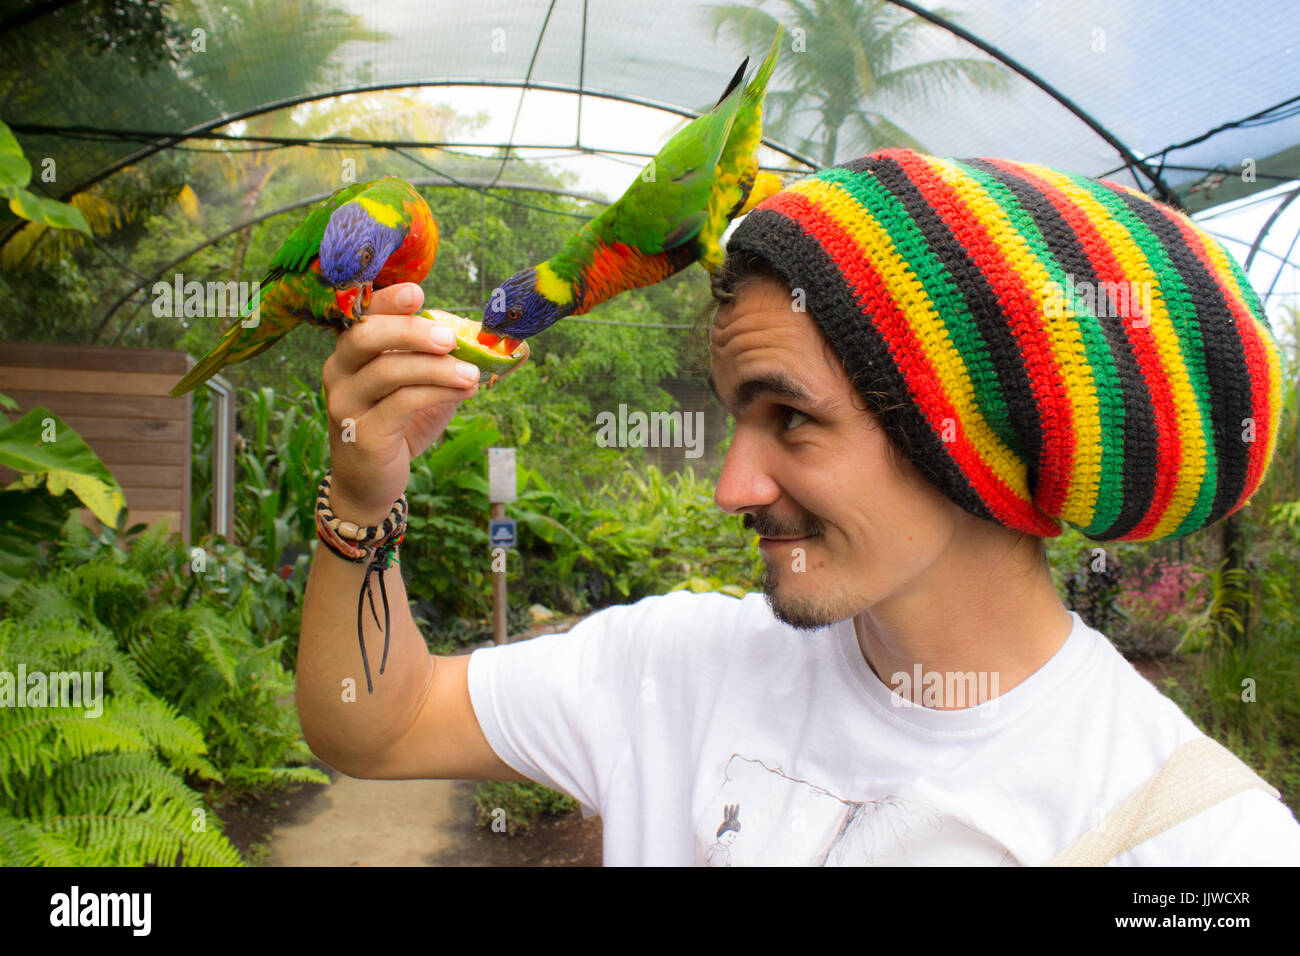 A man holding two Rainbow lorikeets - Stock Image